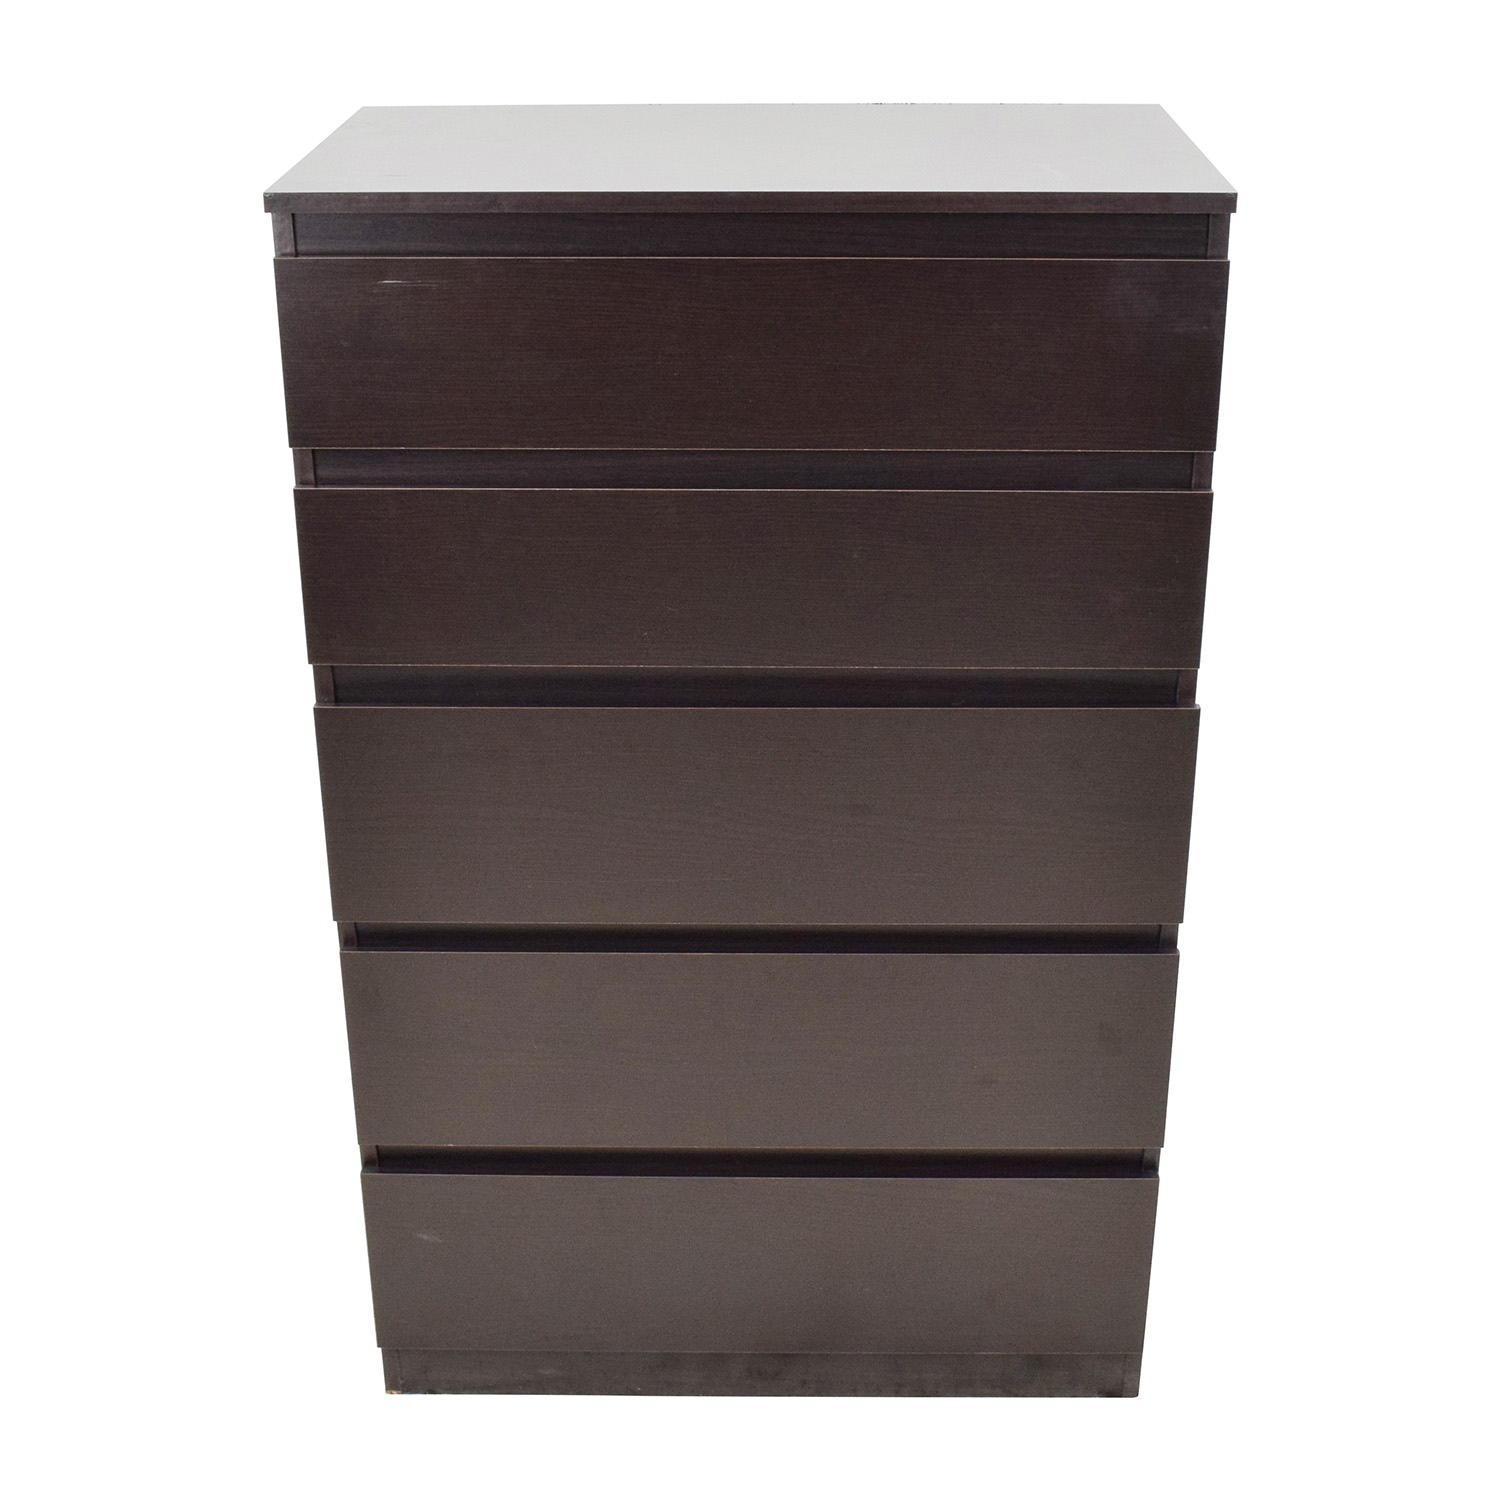 43 off ikea ikea kullen 5 drawer dresser storage. Black Bedroom Furniture Sets. Home Design Ideas